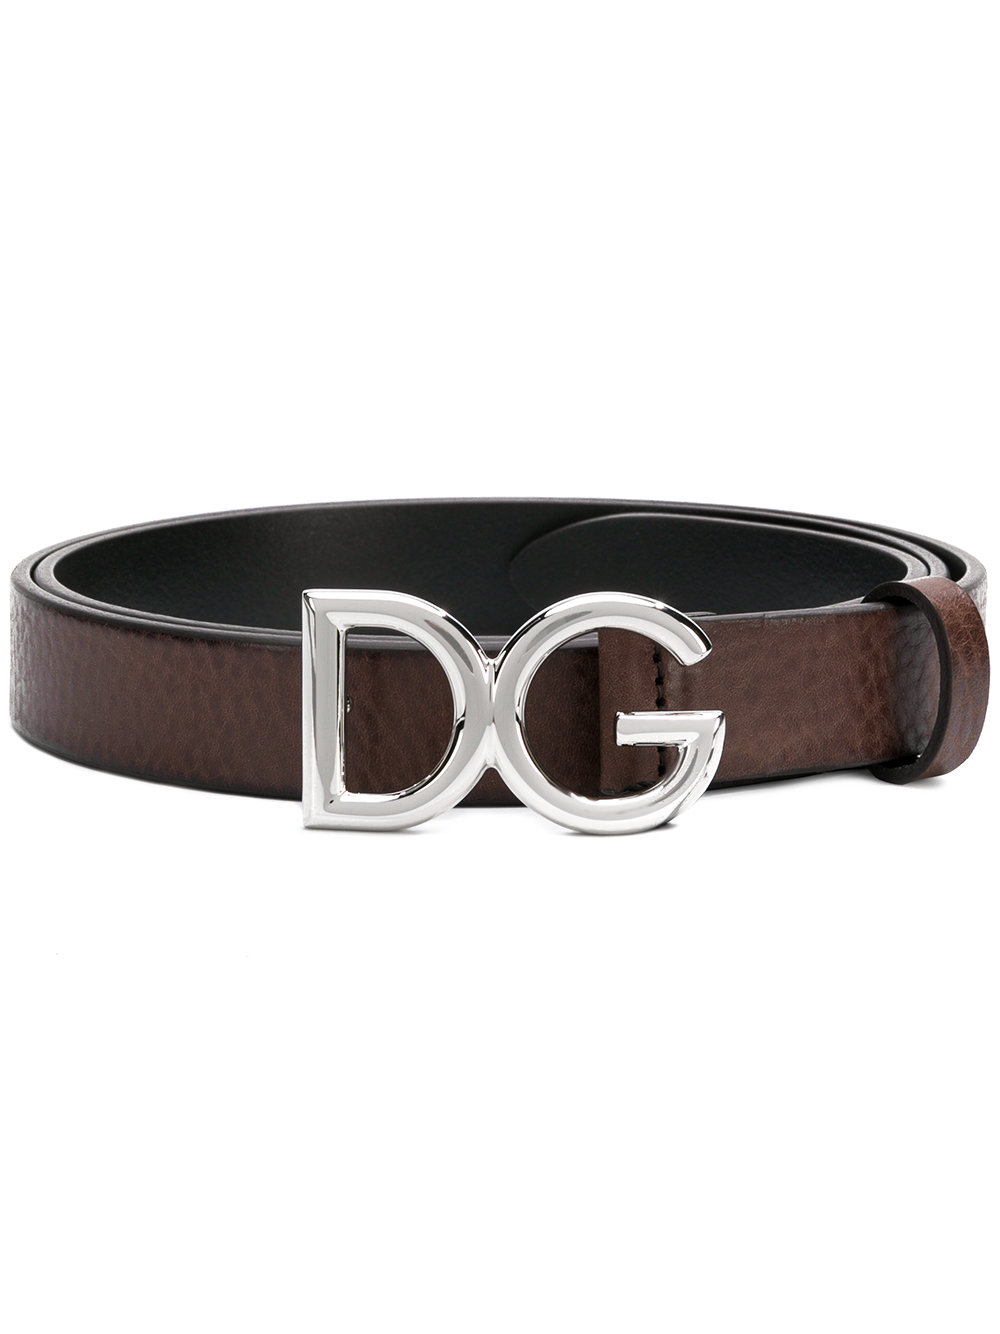 Dolce   Gabbana logo buckle belt - Brown - Glami.sk 90185cccdb6